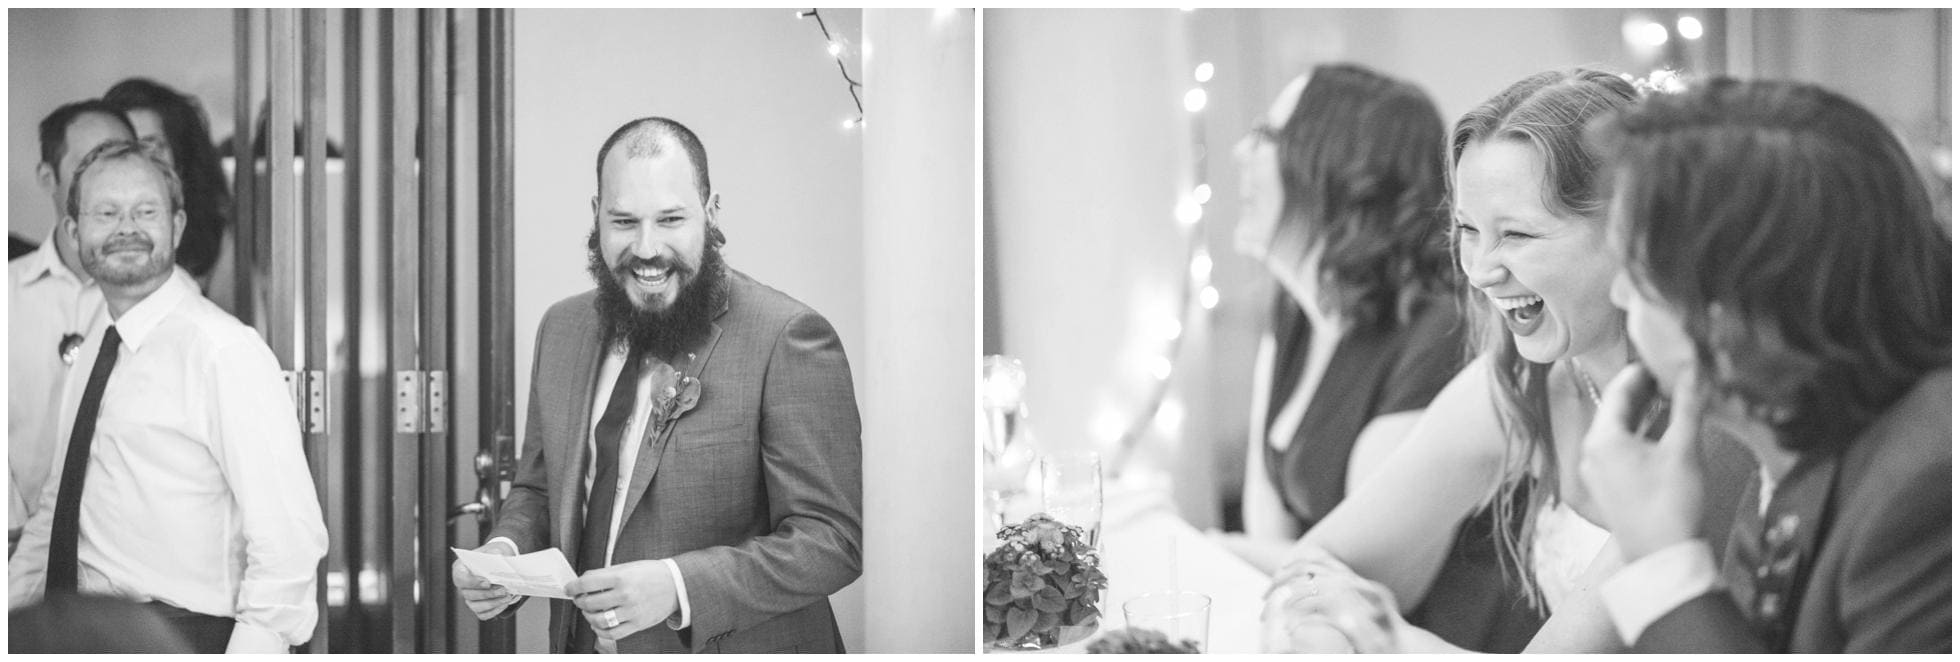 Natural laughter shots at the wedding speeches